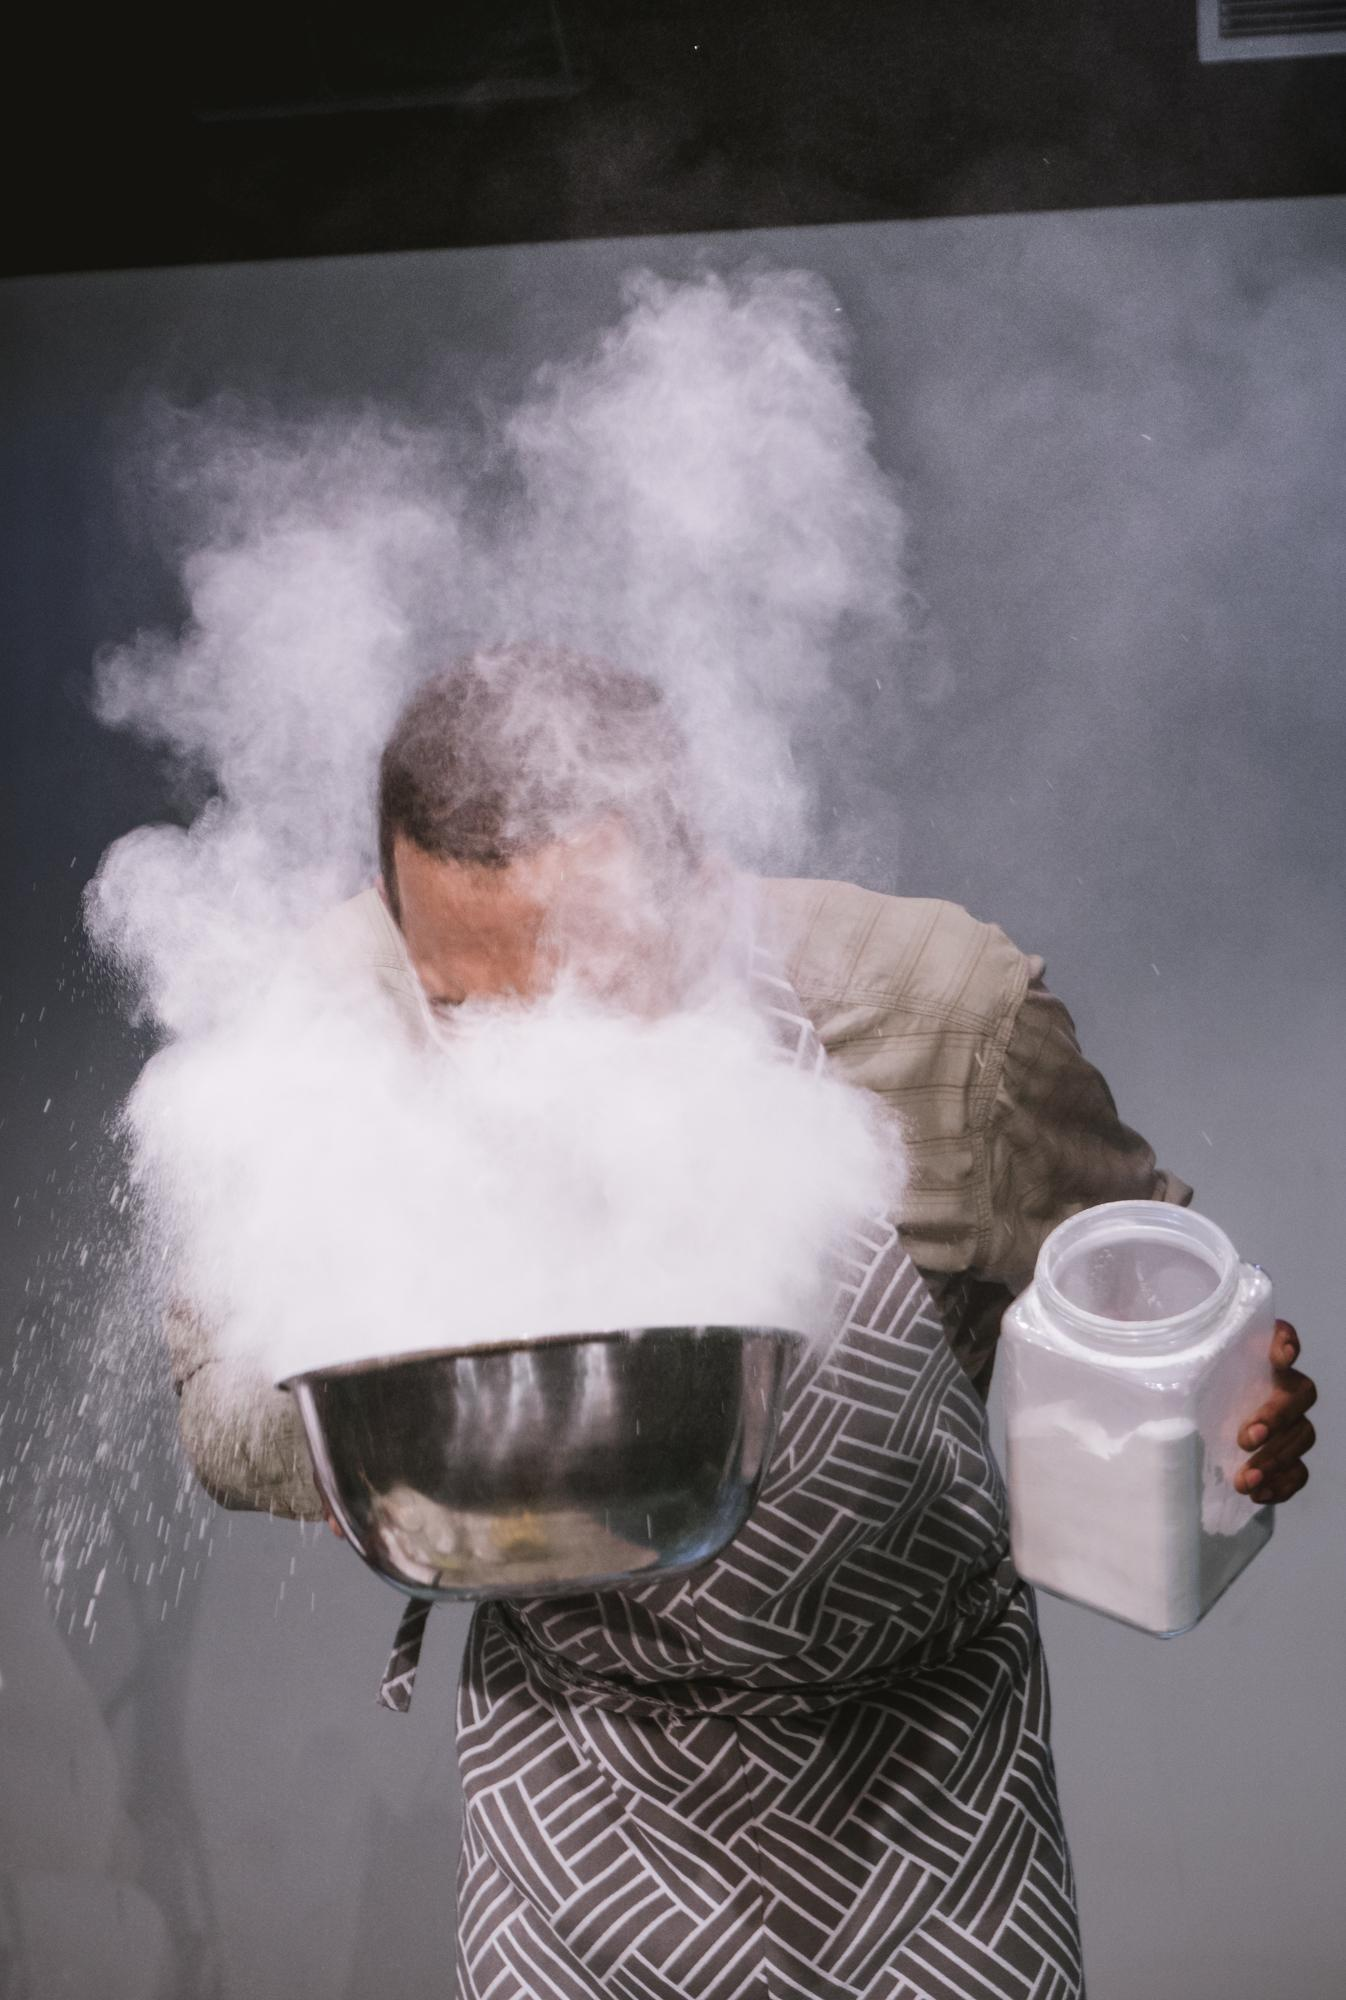 A man bends at the waist to blow into a large metallic bowl full of a white powder. The powder plumes into his face and around his head, obscuring his facial features.